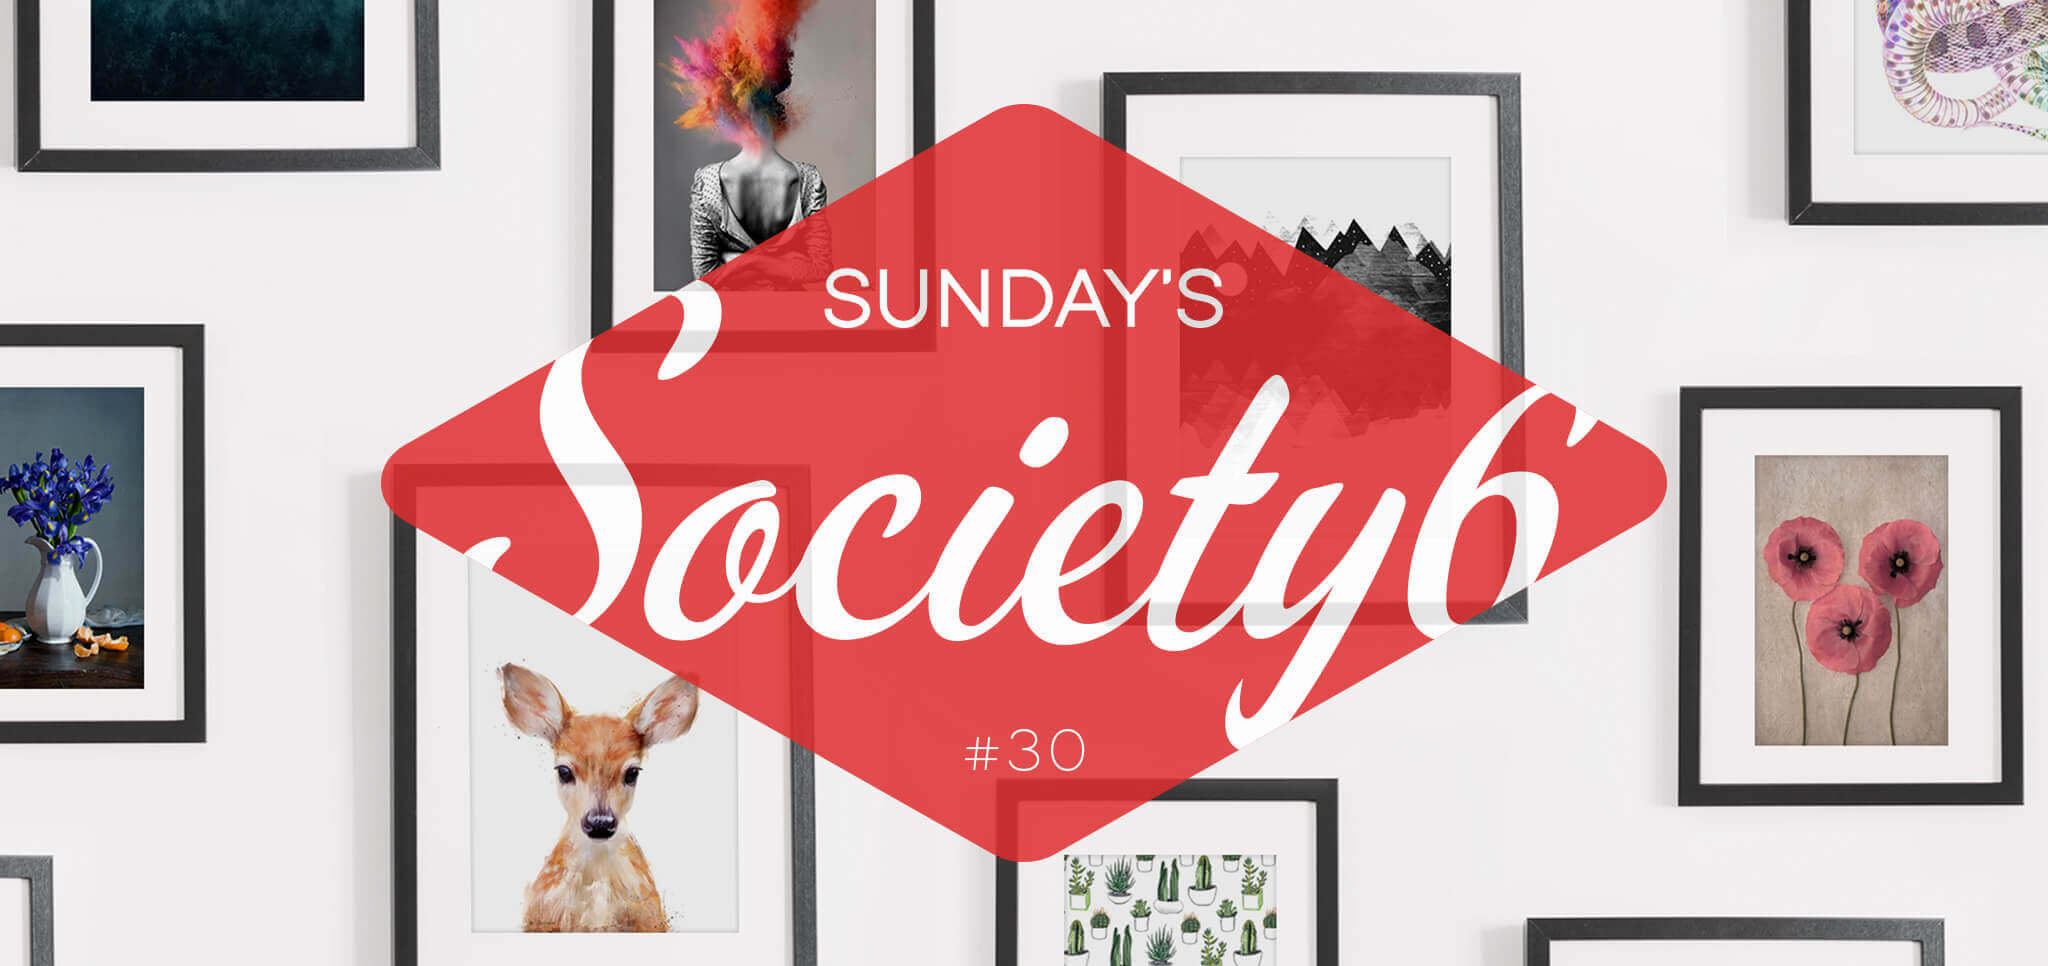 Sunday's Society6 #30